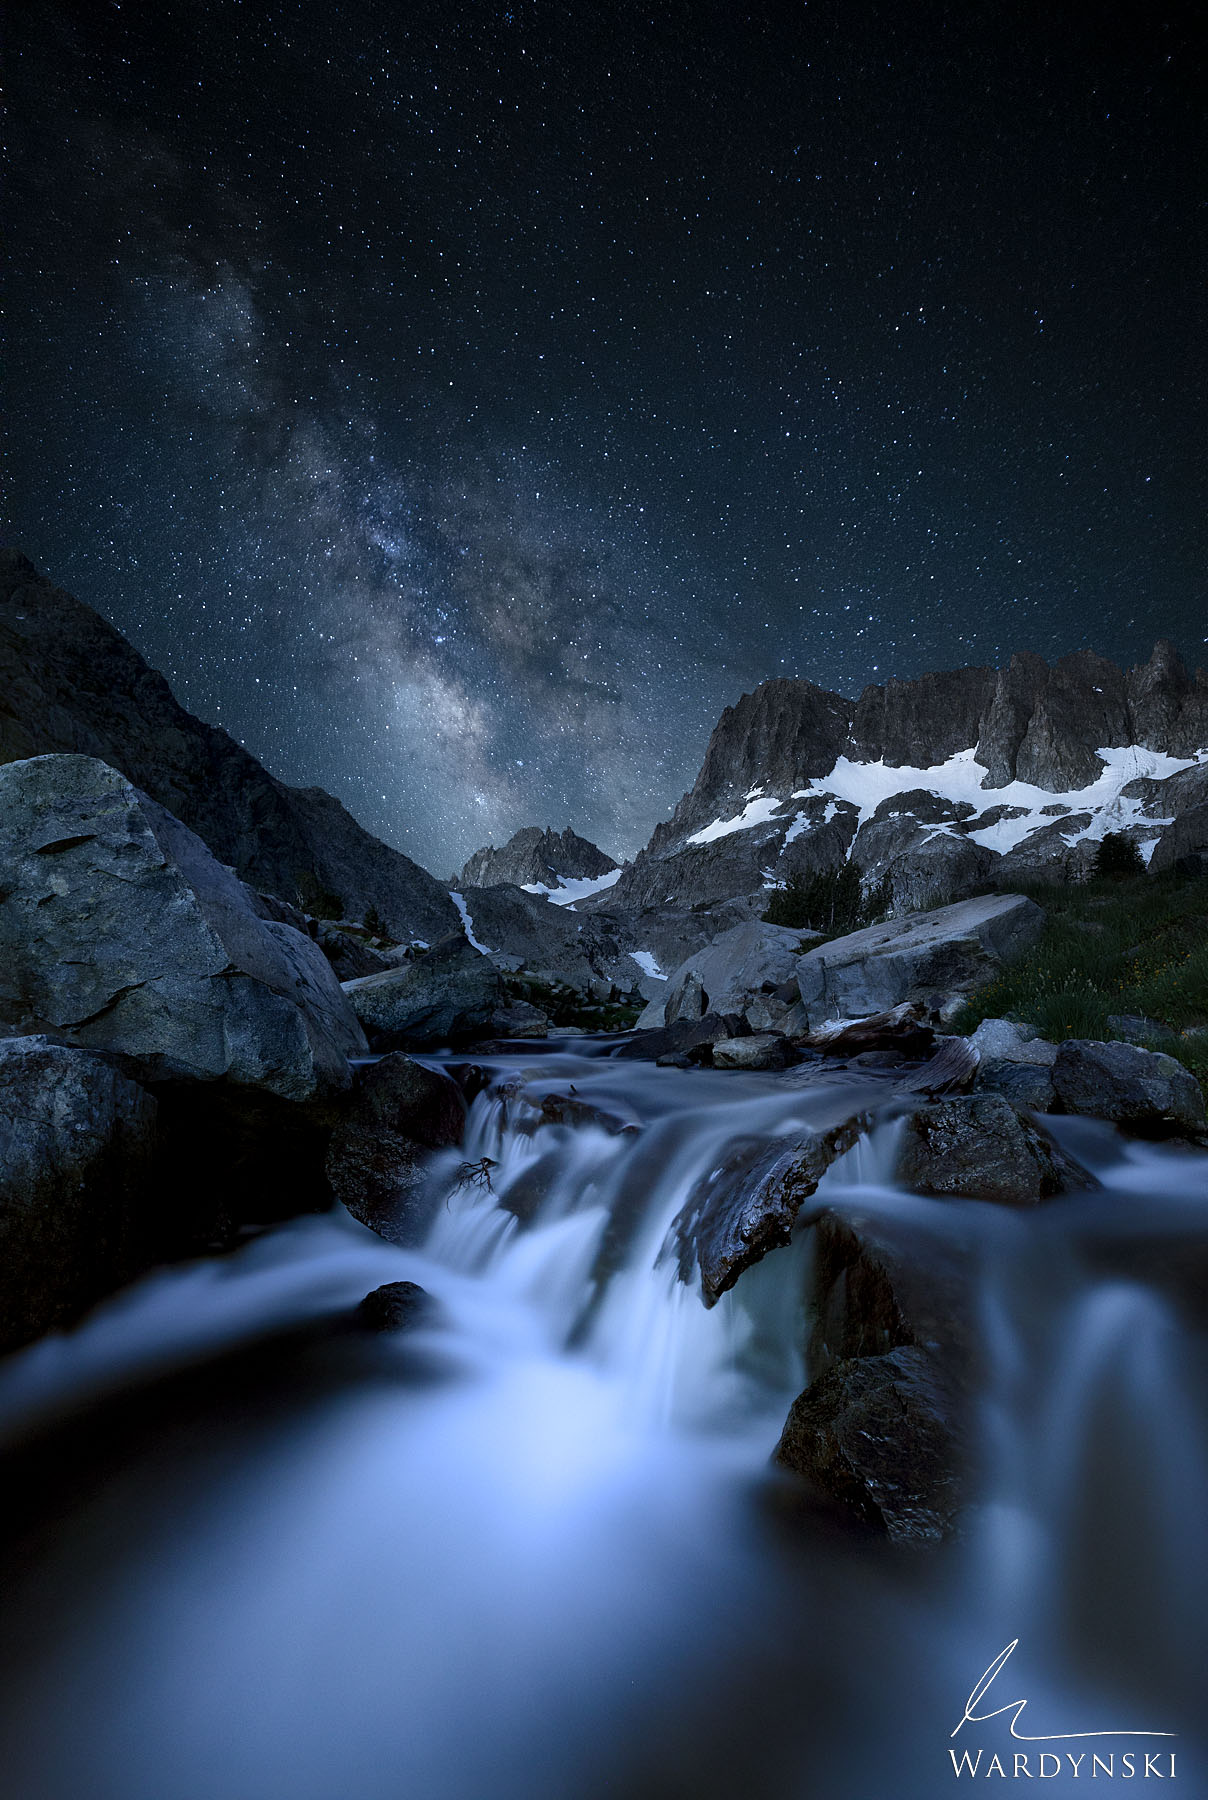 The Milky Way Rises over the Minarets in the Ansel Adams Wilderness